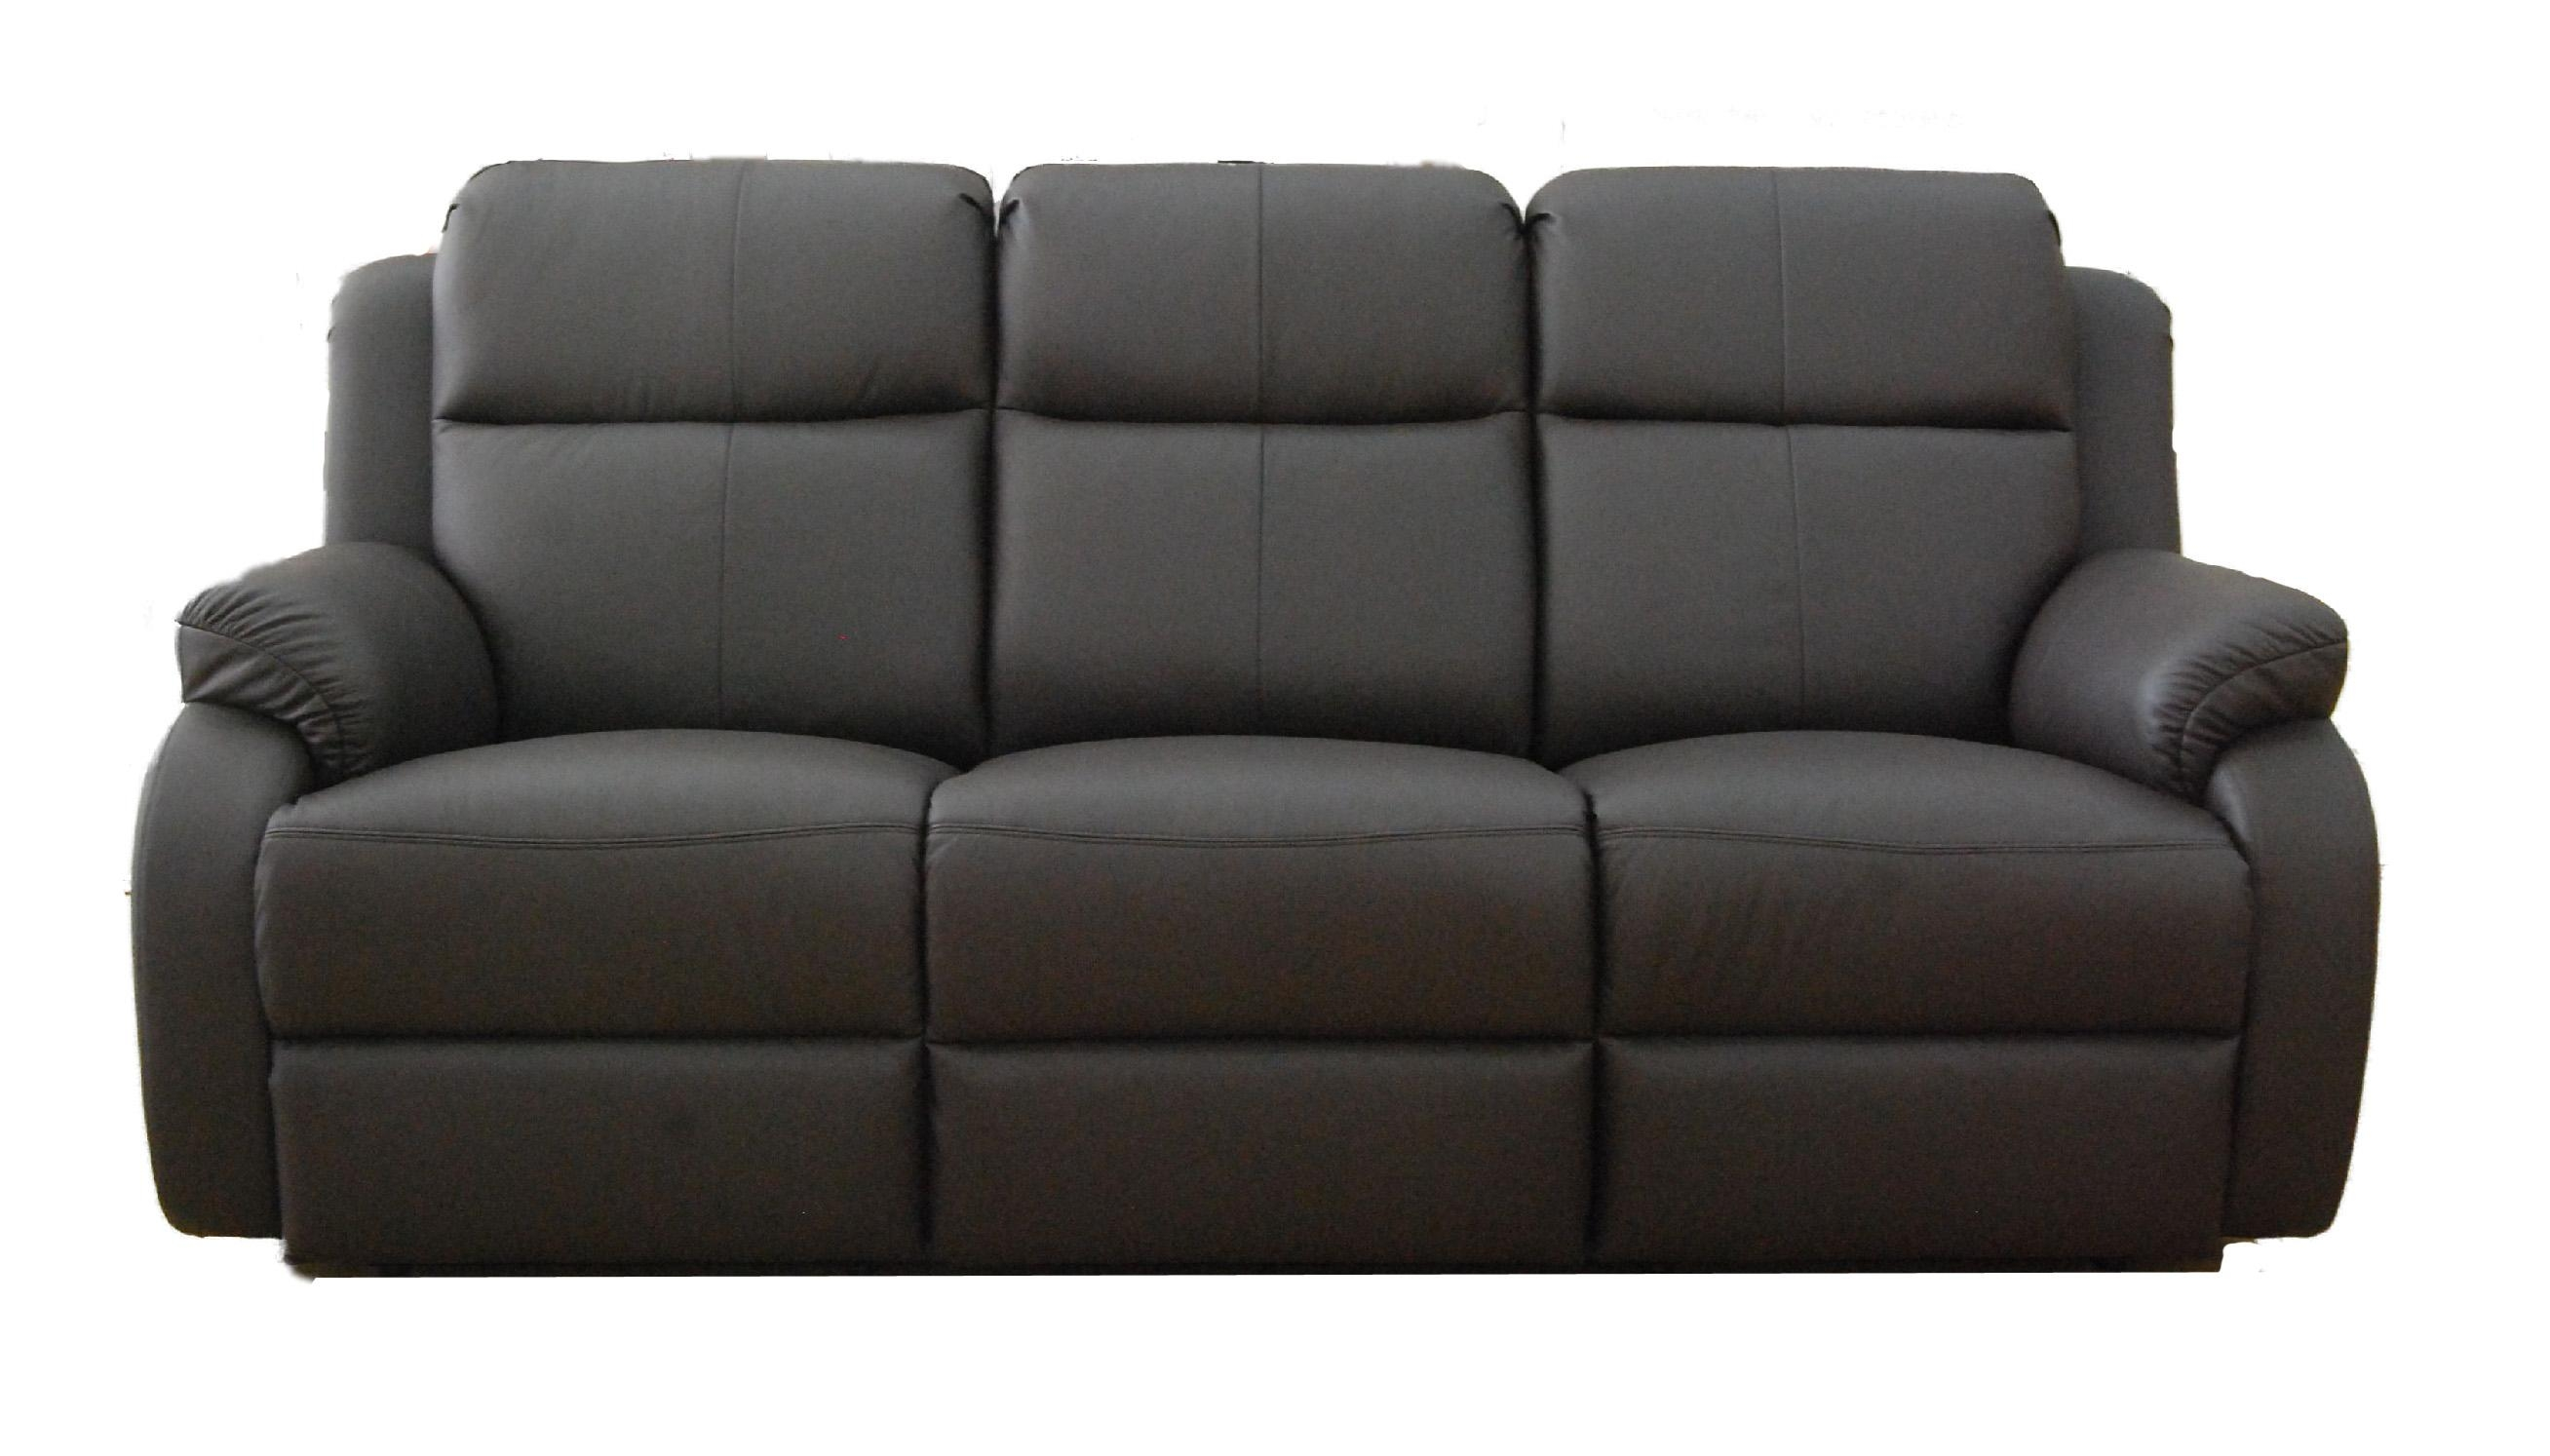 Recliner Sofa Sale Singapore | Tehranmix Decoration In 2 Seater Recliner Leather Sofas (Image 12 of 20)